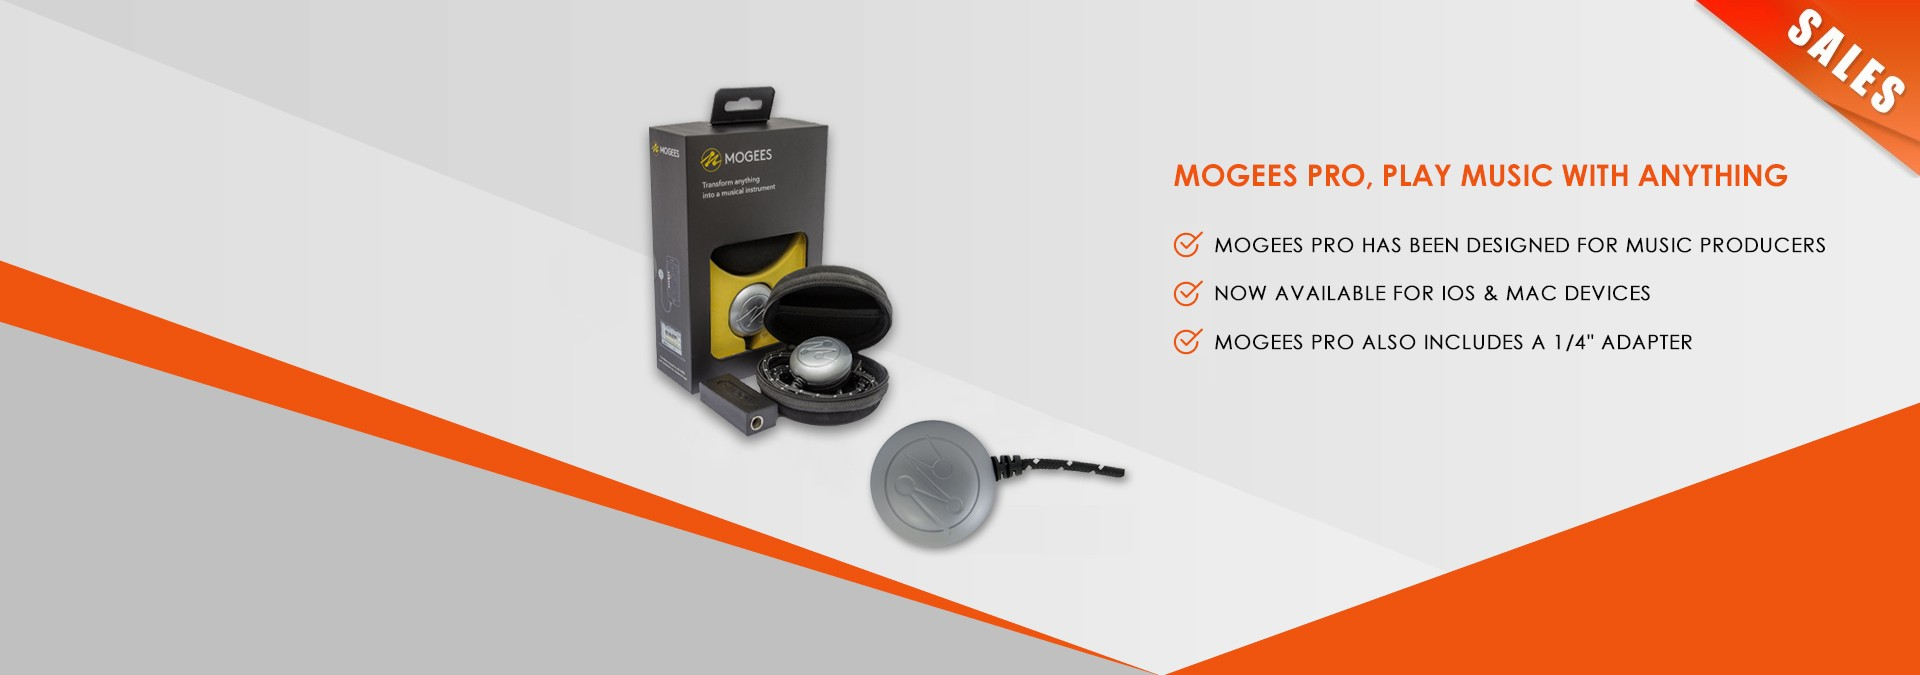 Mogees Pro, Play Music With Anything